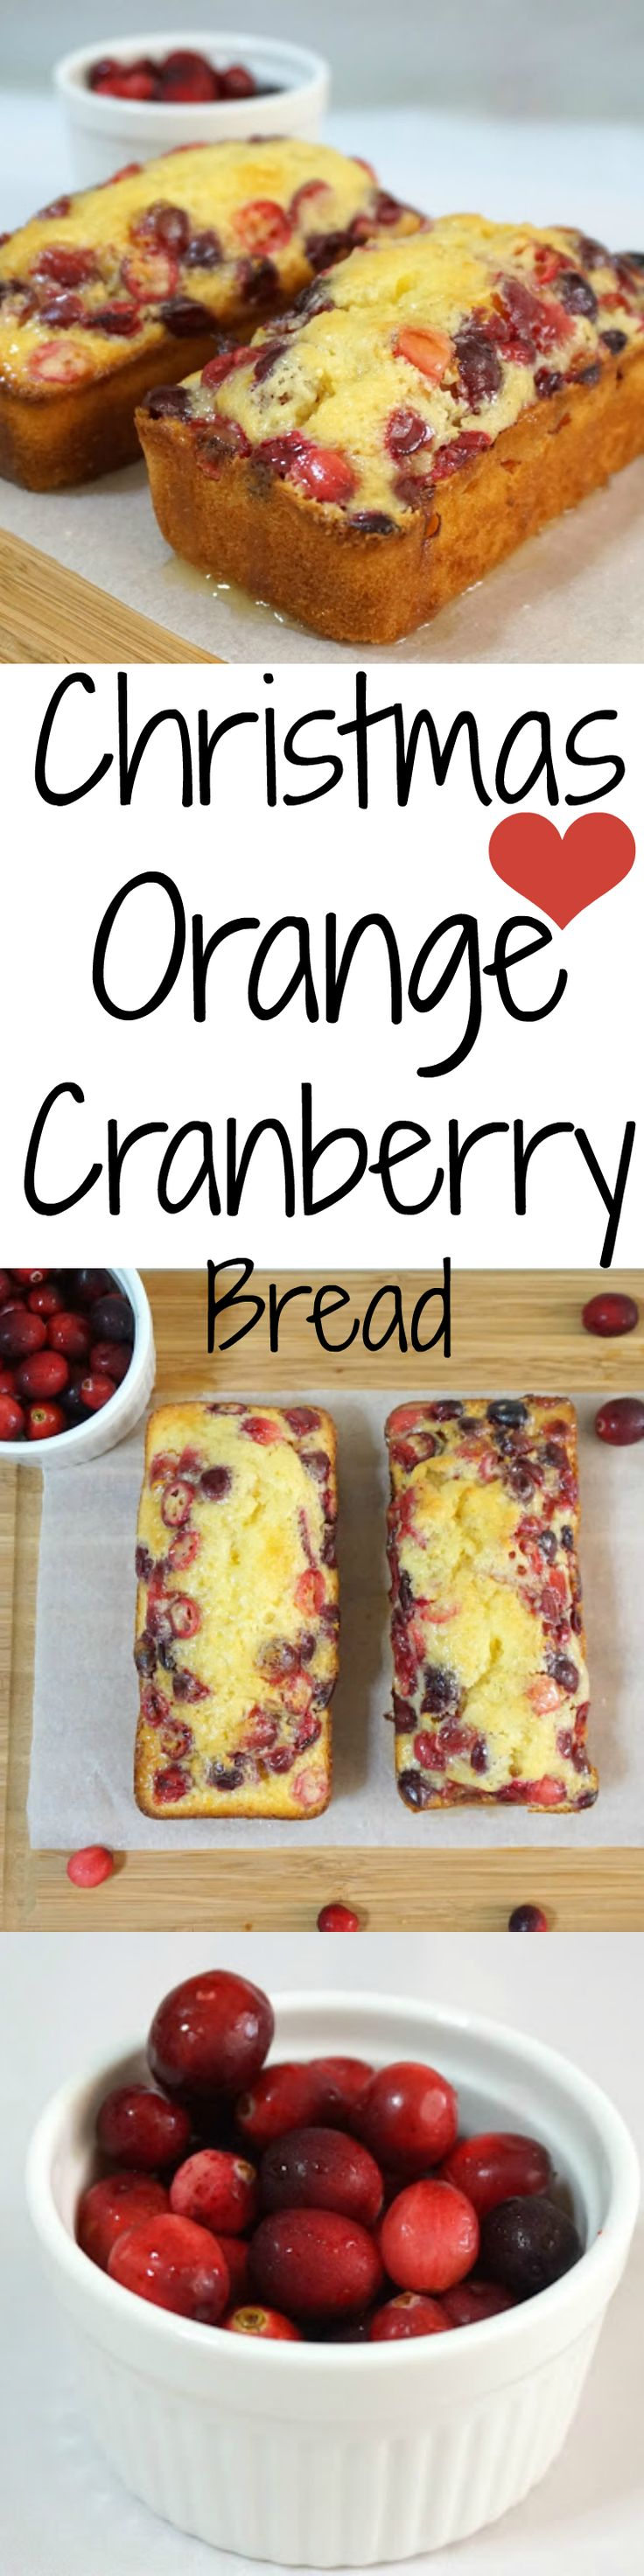 As CHRISTMAS time is approaching, time to bake these orange cranberry loaf/ bread!! The taste is A-M-A-Z-I-N-G!!